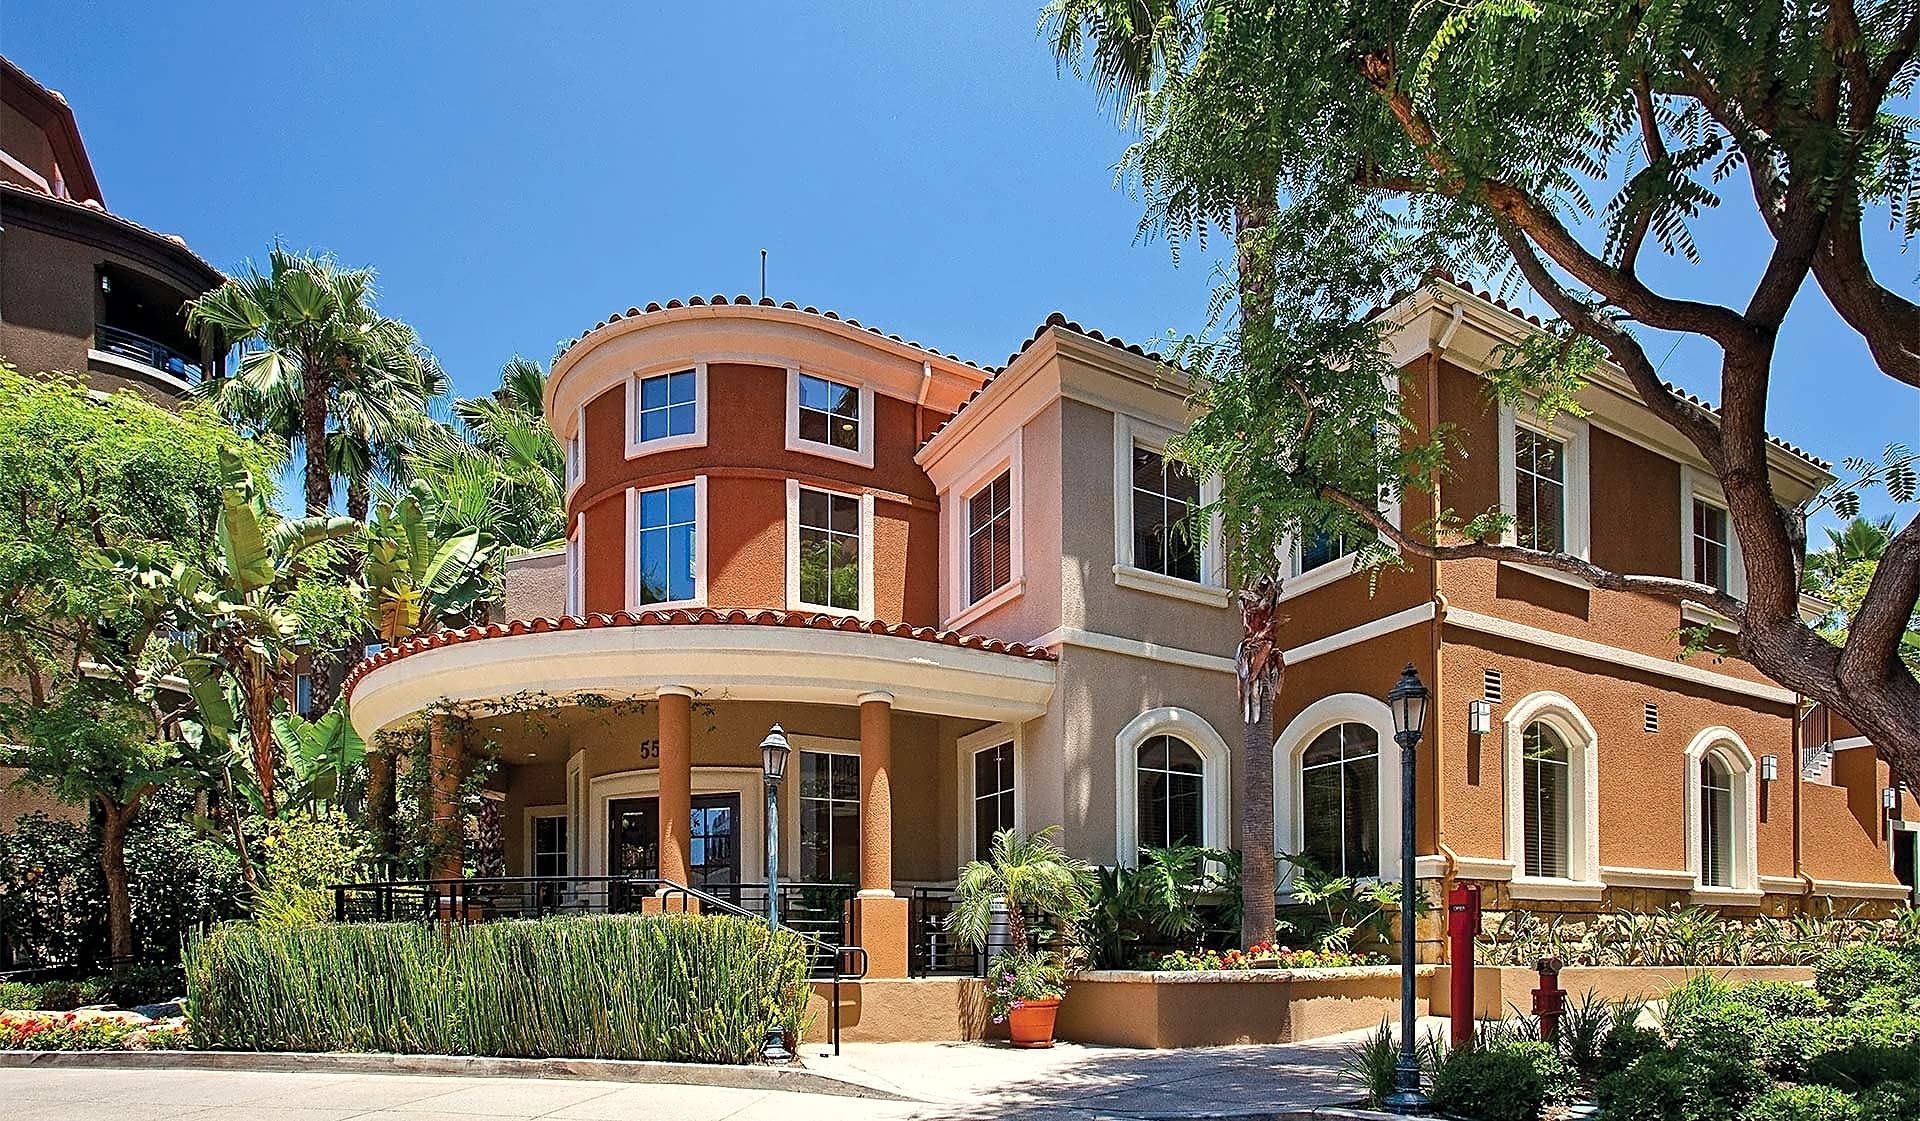 Our West Los Angeles community offers 1- and 2-bedroom apartment homes